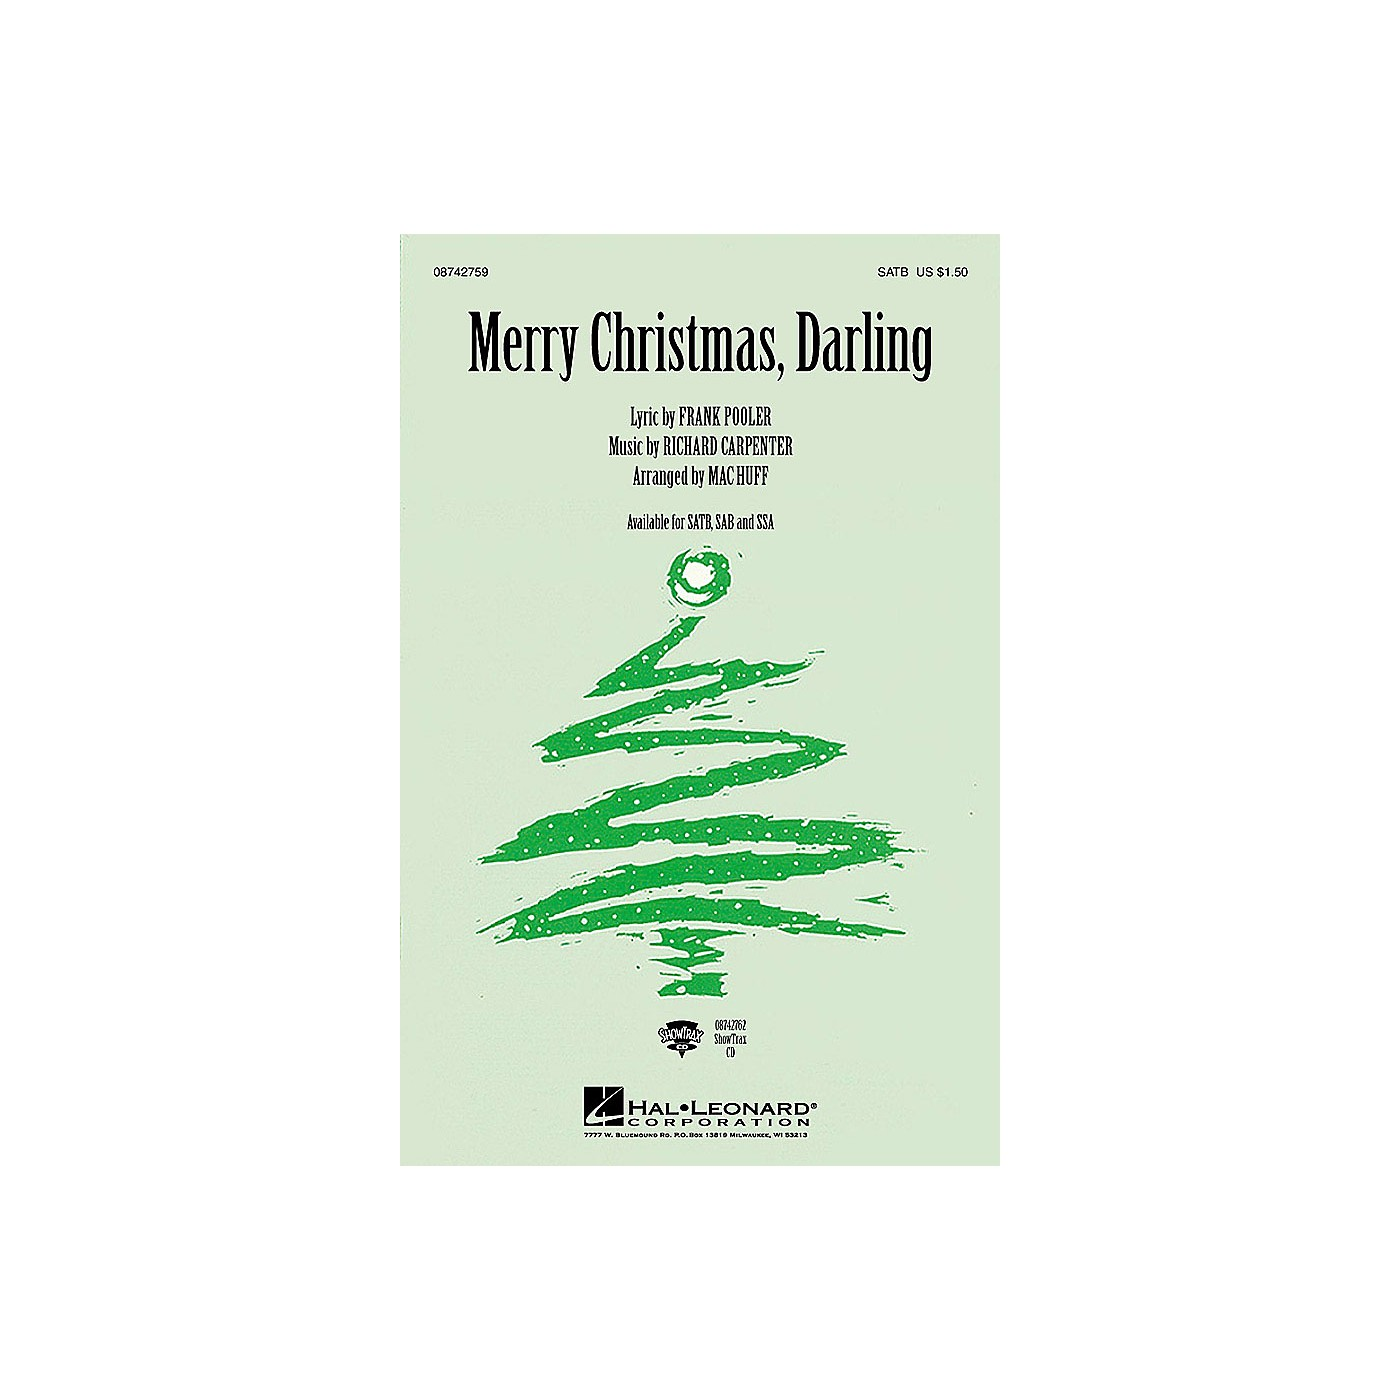 Hal Leonard Merry Christmas, Darling ShowTrax CD by The Carpenters Arranged by Mac Huff thumbnail